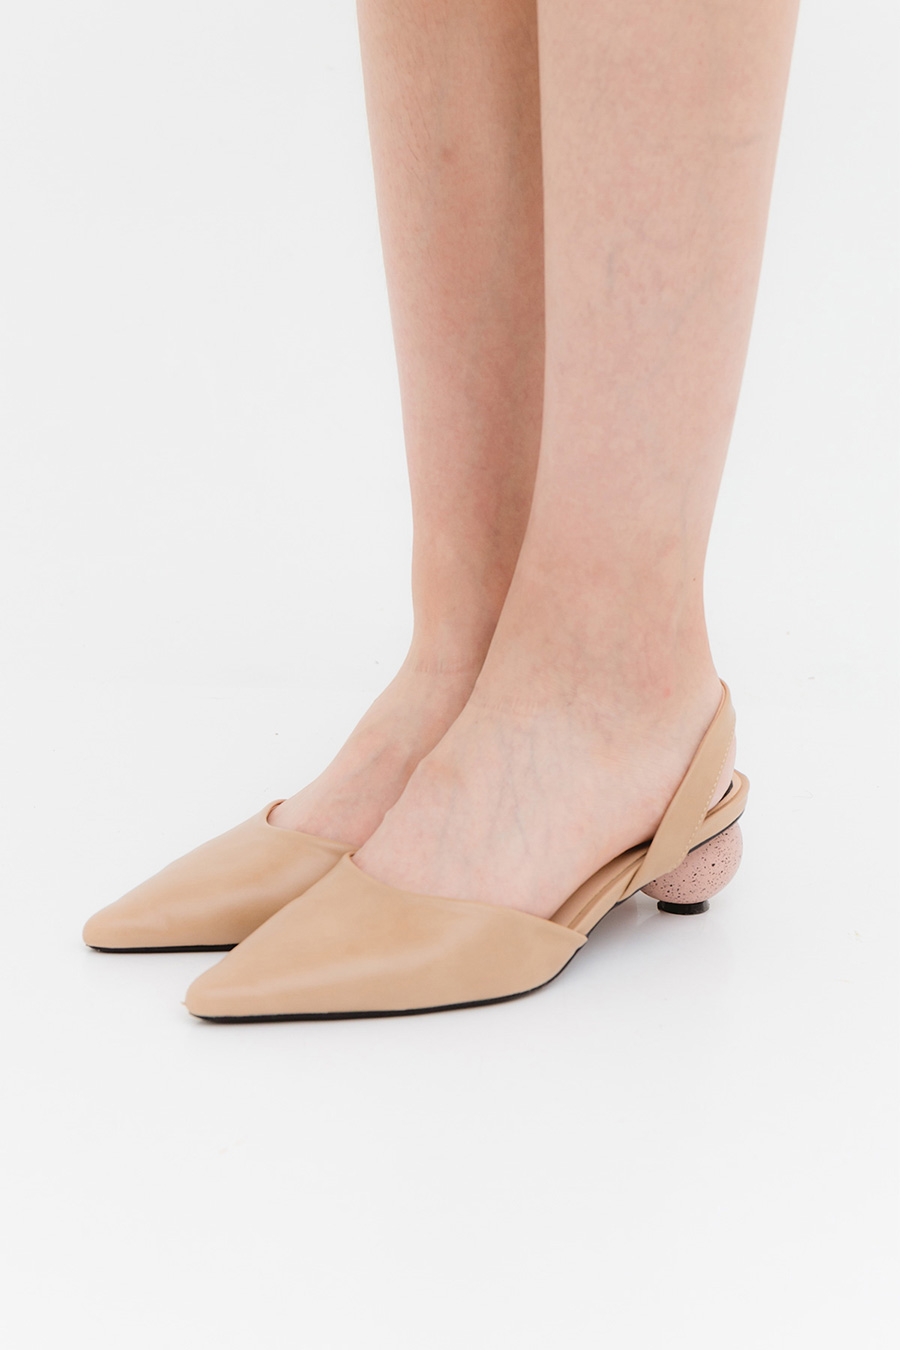 *SALE* SURYO SHOES - NUDE